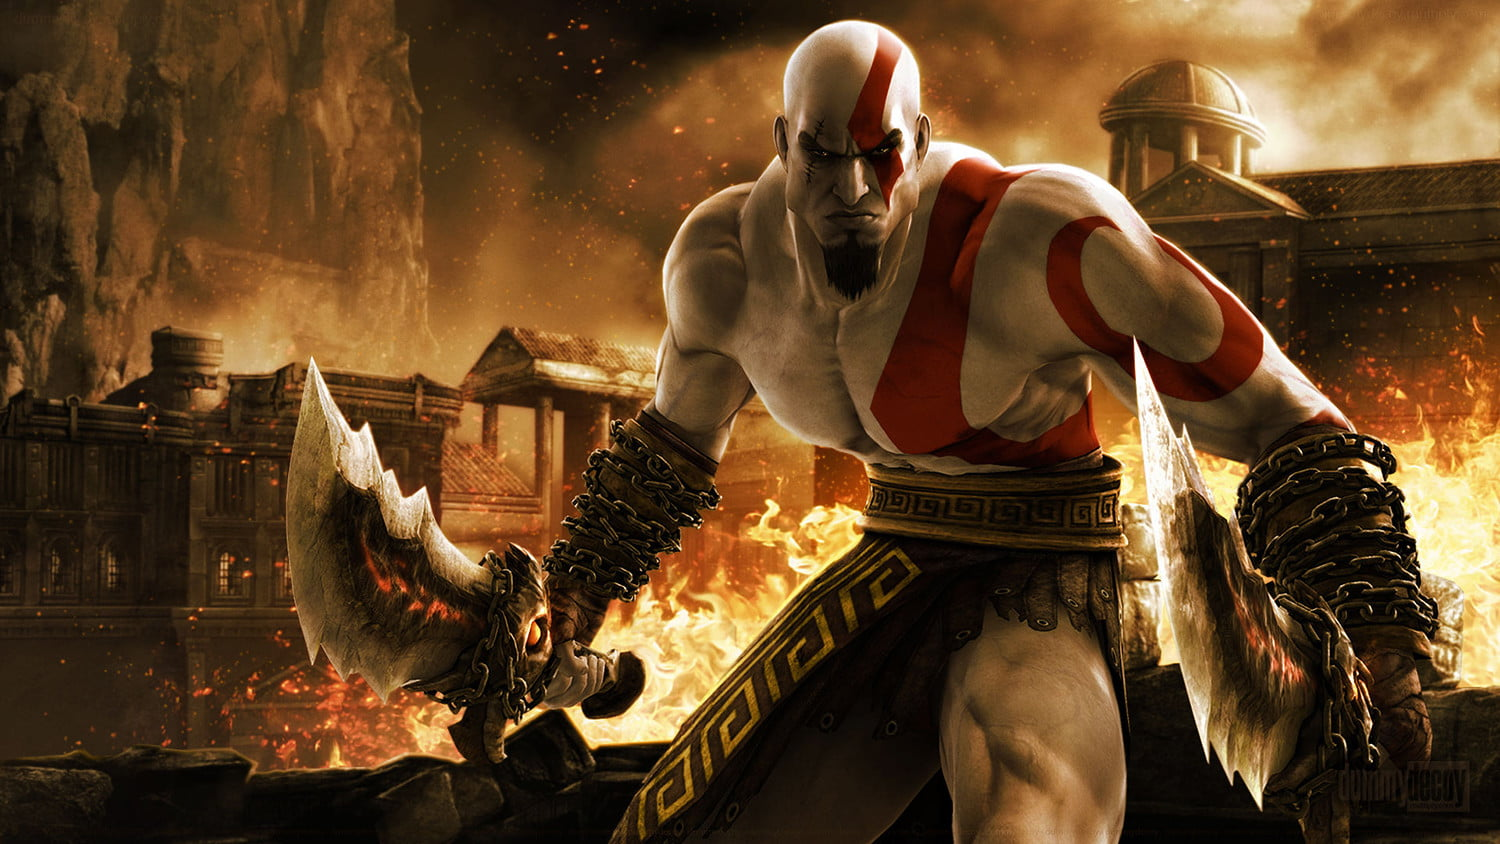 God Of War Game - Free downloads and reviews - CNET ...